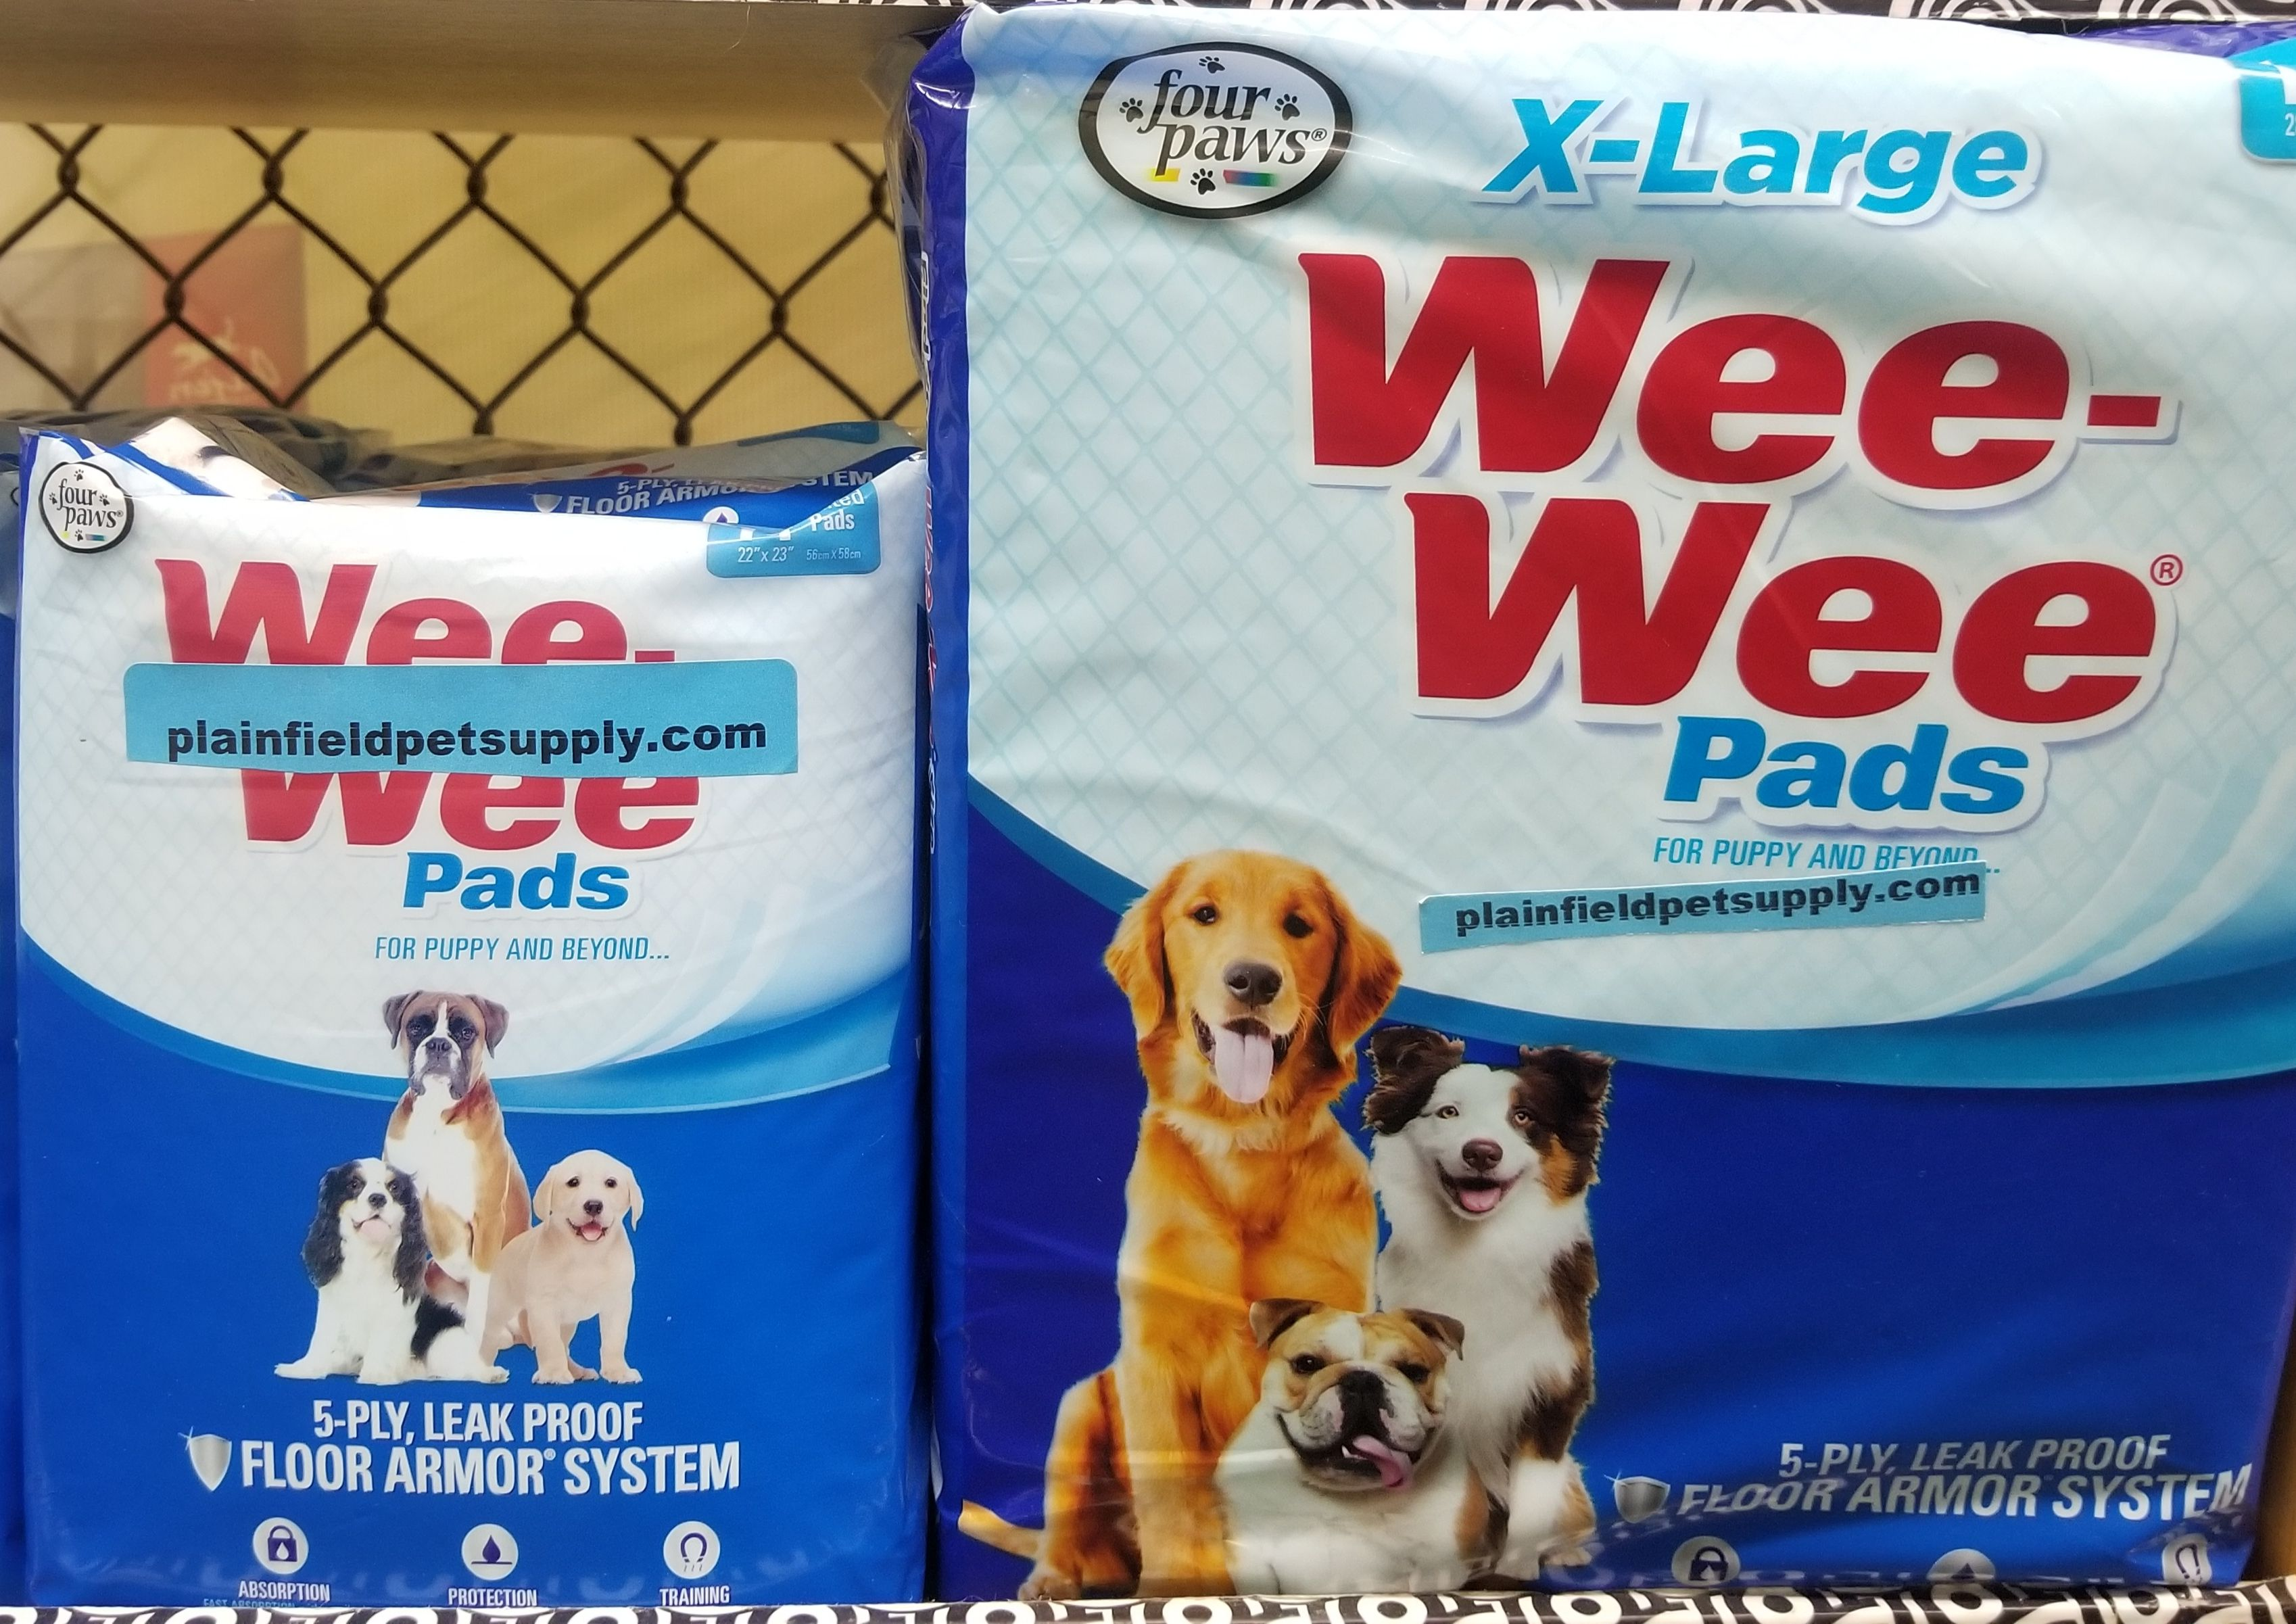 We Carry Weewee Pads Available In Regular Or Xl Open Today 8am To 6pm 815 609 1821 Www Plainfieldpetsupply Com Wee Wee Pads Pet Supplies Puppies